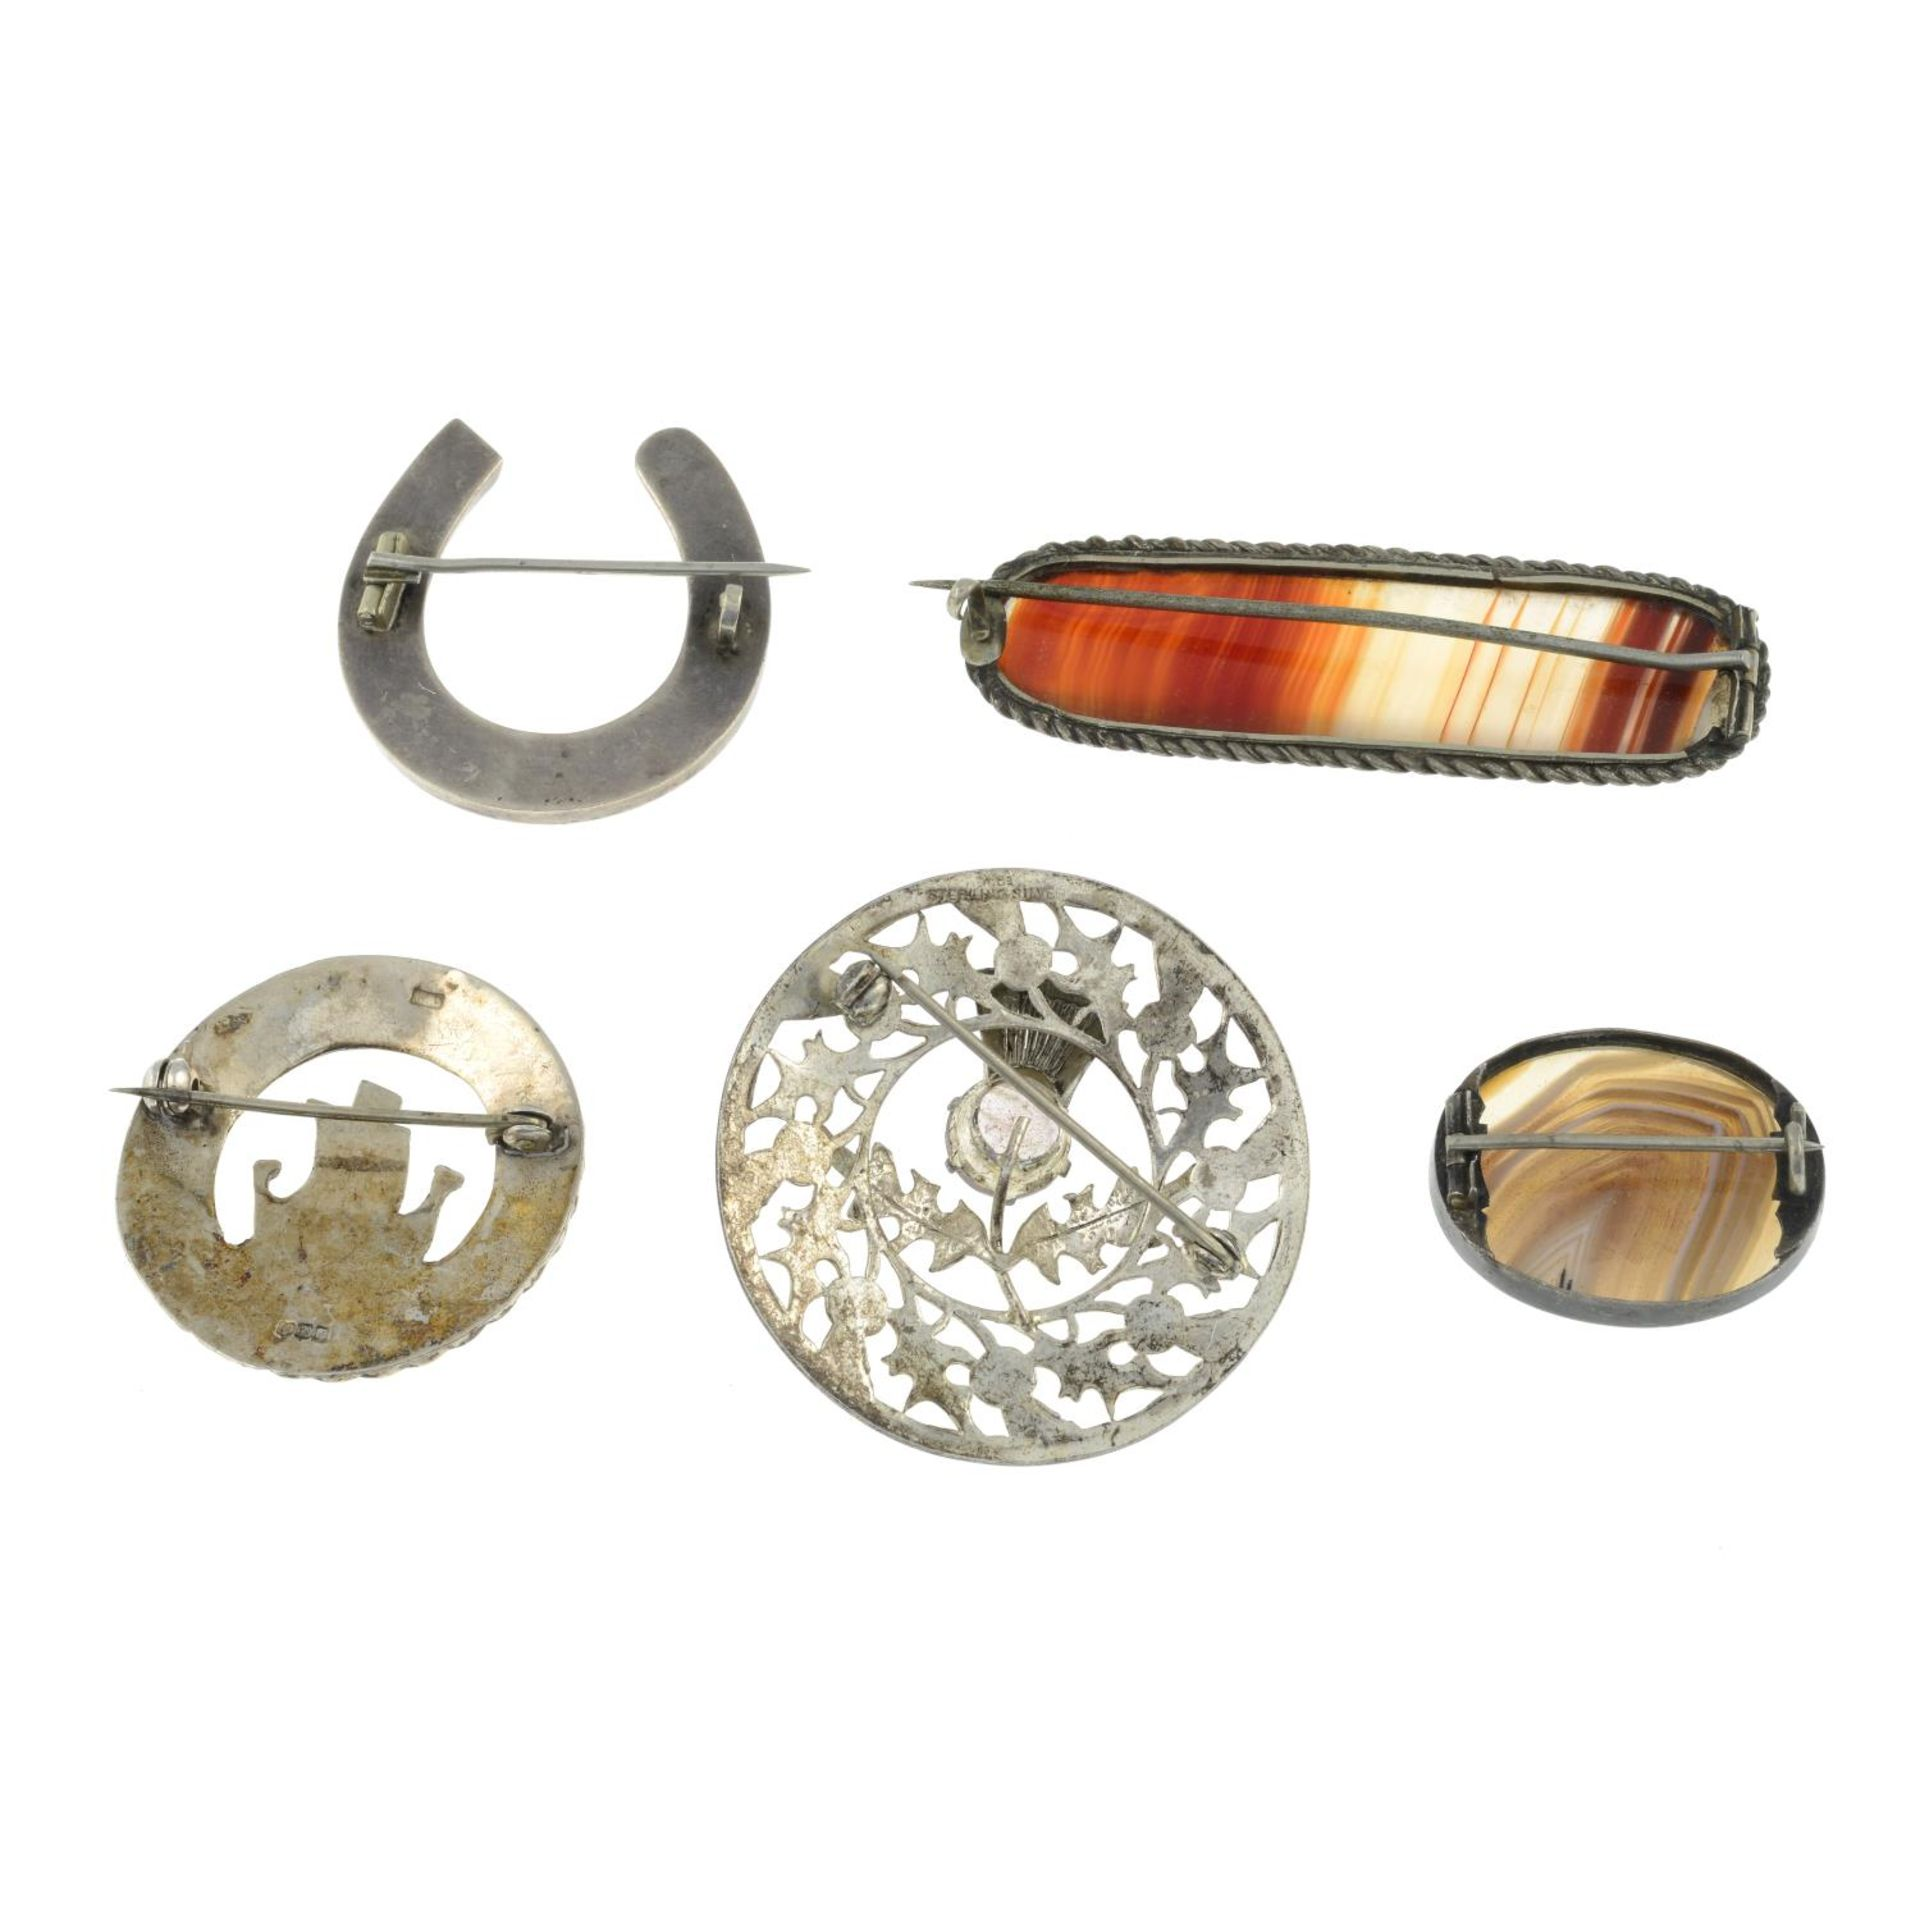 A selection of mainly Scottish agate brooches, to include an agate panel horseshoe brooch. - Image 2 of 3